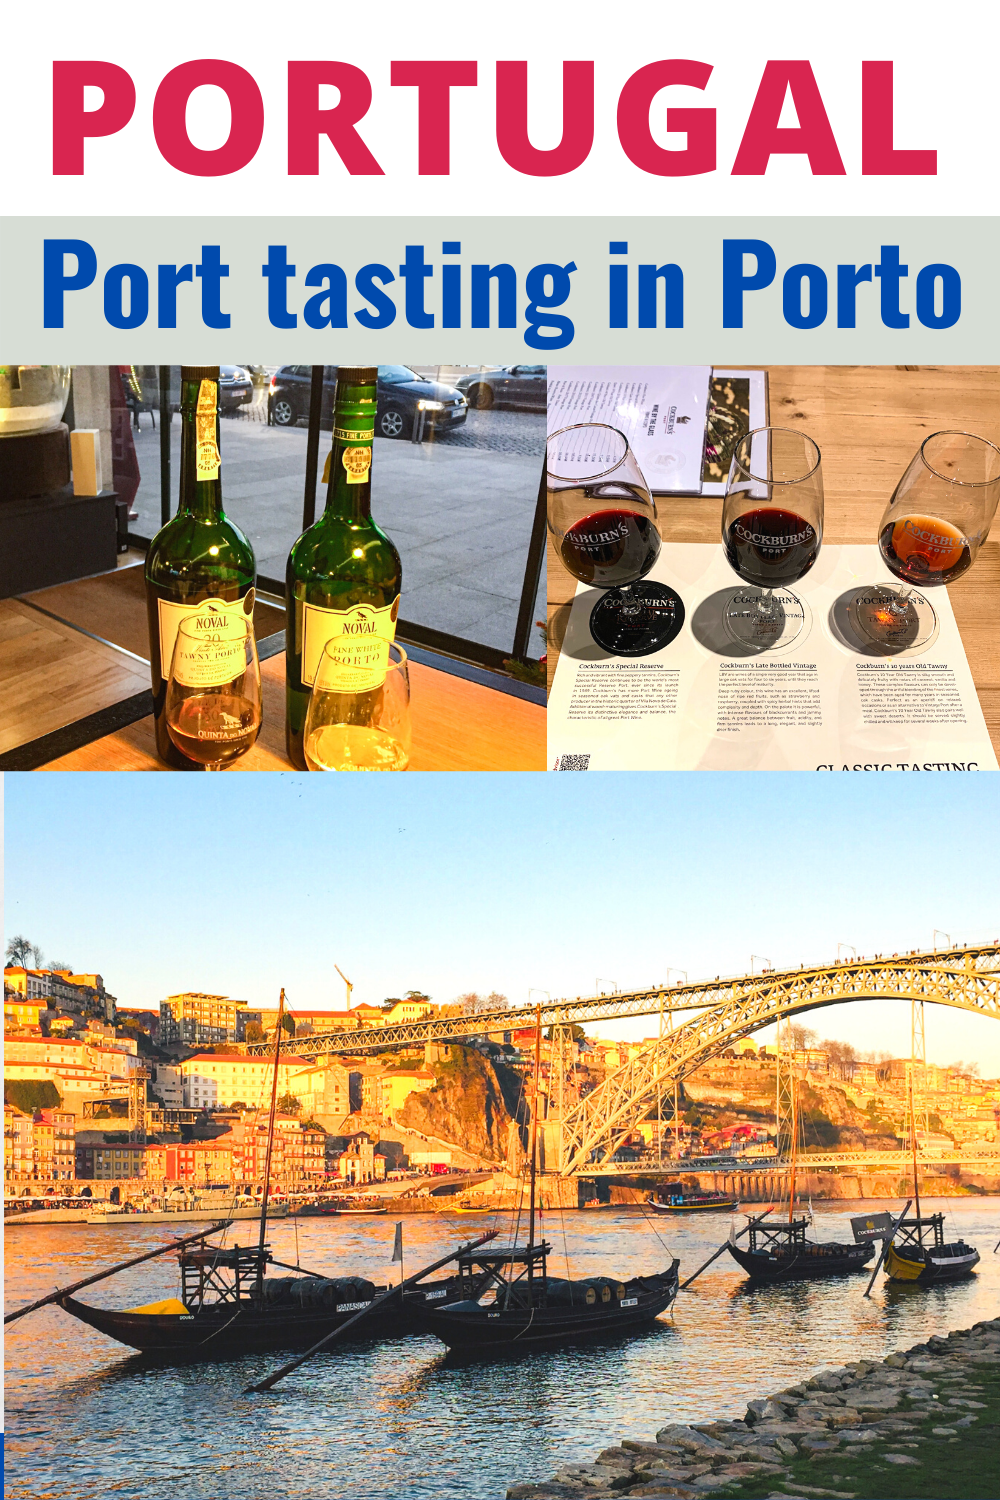 Europe travel: port tasting in Porto Portugal. Where to try port in porto and top tips for port tasting in Porto. If you're in Porto, you must try some port, the trade synonymous with the city. There are many ways you can do some port tasting/ port wine tasting in Porto. Read my post for top tips on how to do some Porto port tasting on a visit to Porto. Portugal travel. #porto #port #porttasting #citybreak #portugal #travel #portugaltravel #portwine #winetasting